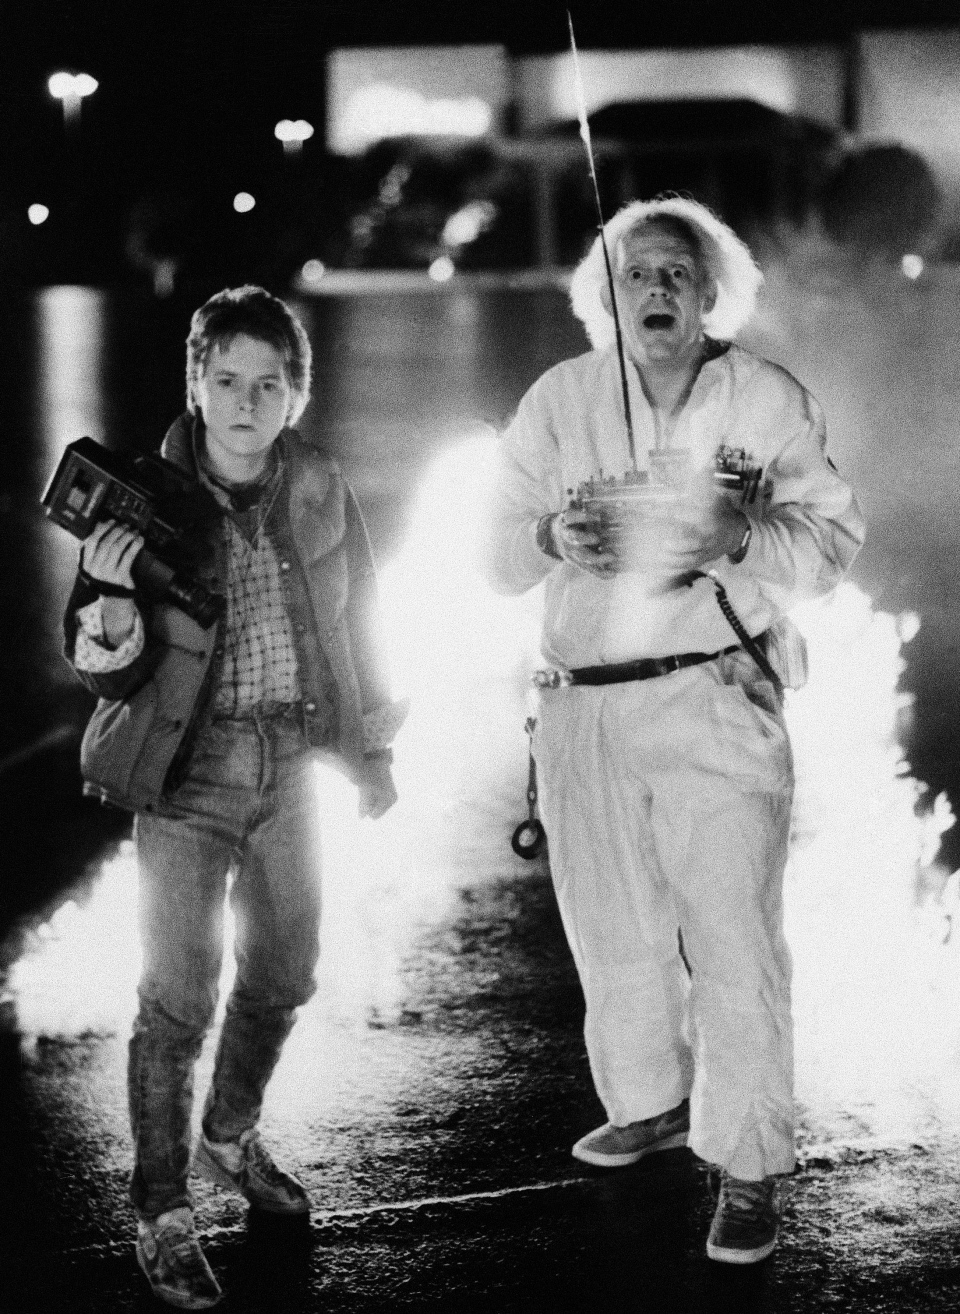 This 1985 file photo originally released by Universal Pictures shows Michael J. Fox as Marty McFly, left, and Christopher Lloyd as inventor Doctor Emmett Brown in a scene from the film, 'Back to the Future.' (AP / File)